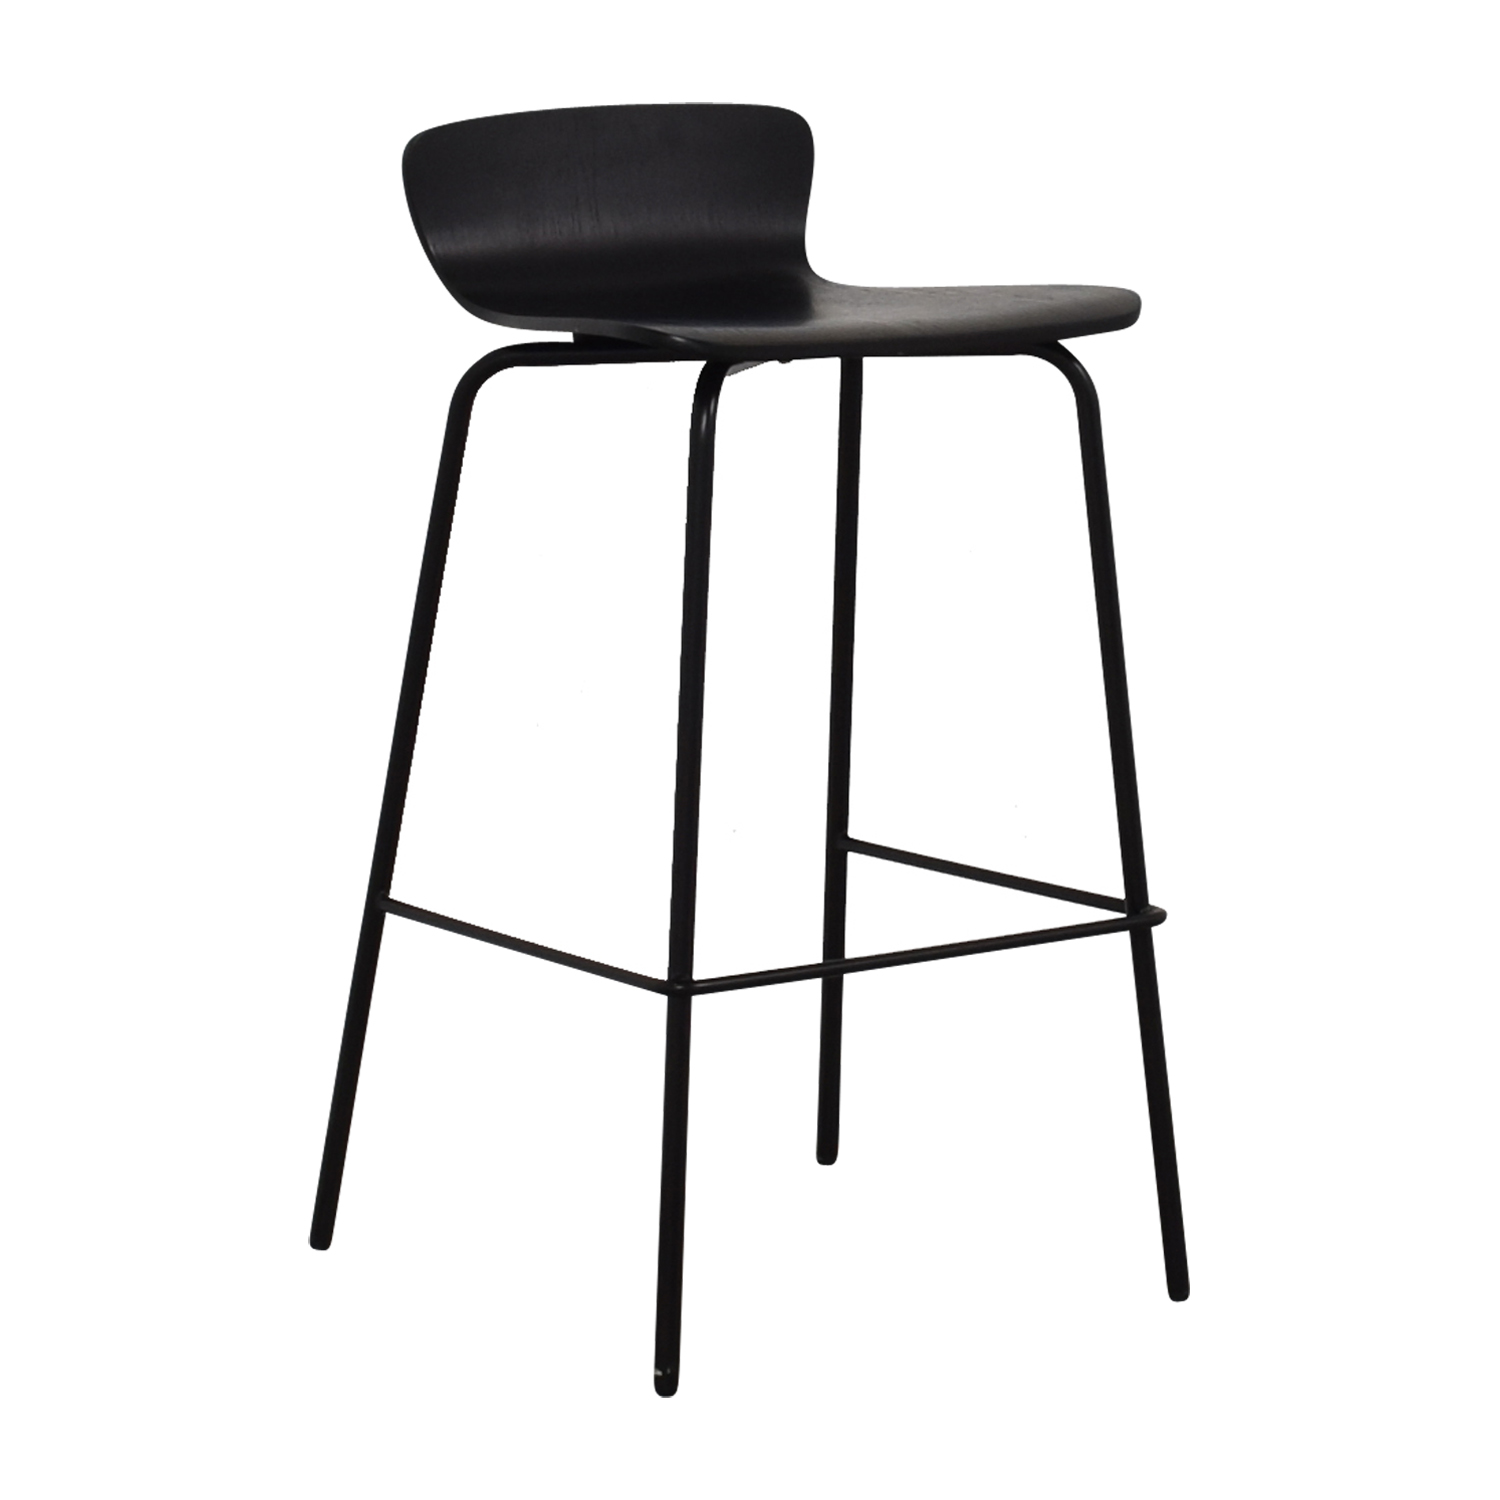 Crate & Barrel Crate & Barrel Felix Black Counter Bar Stool Chairs